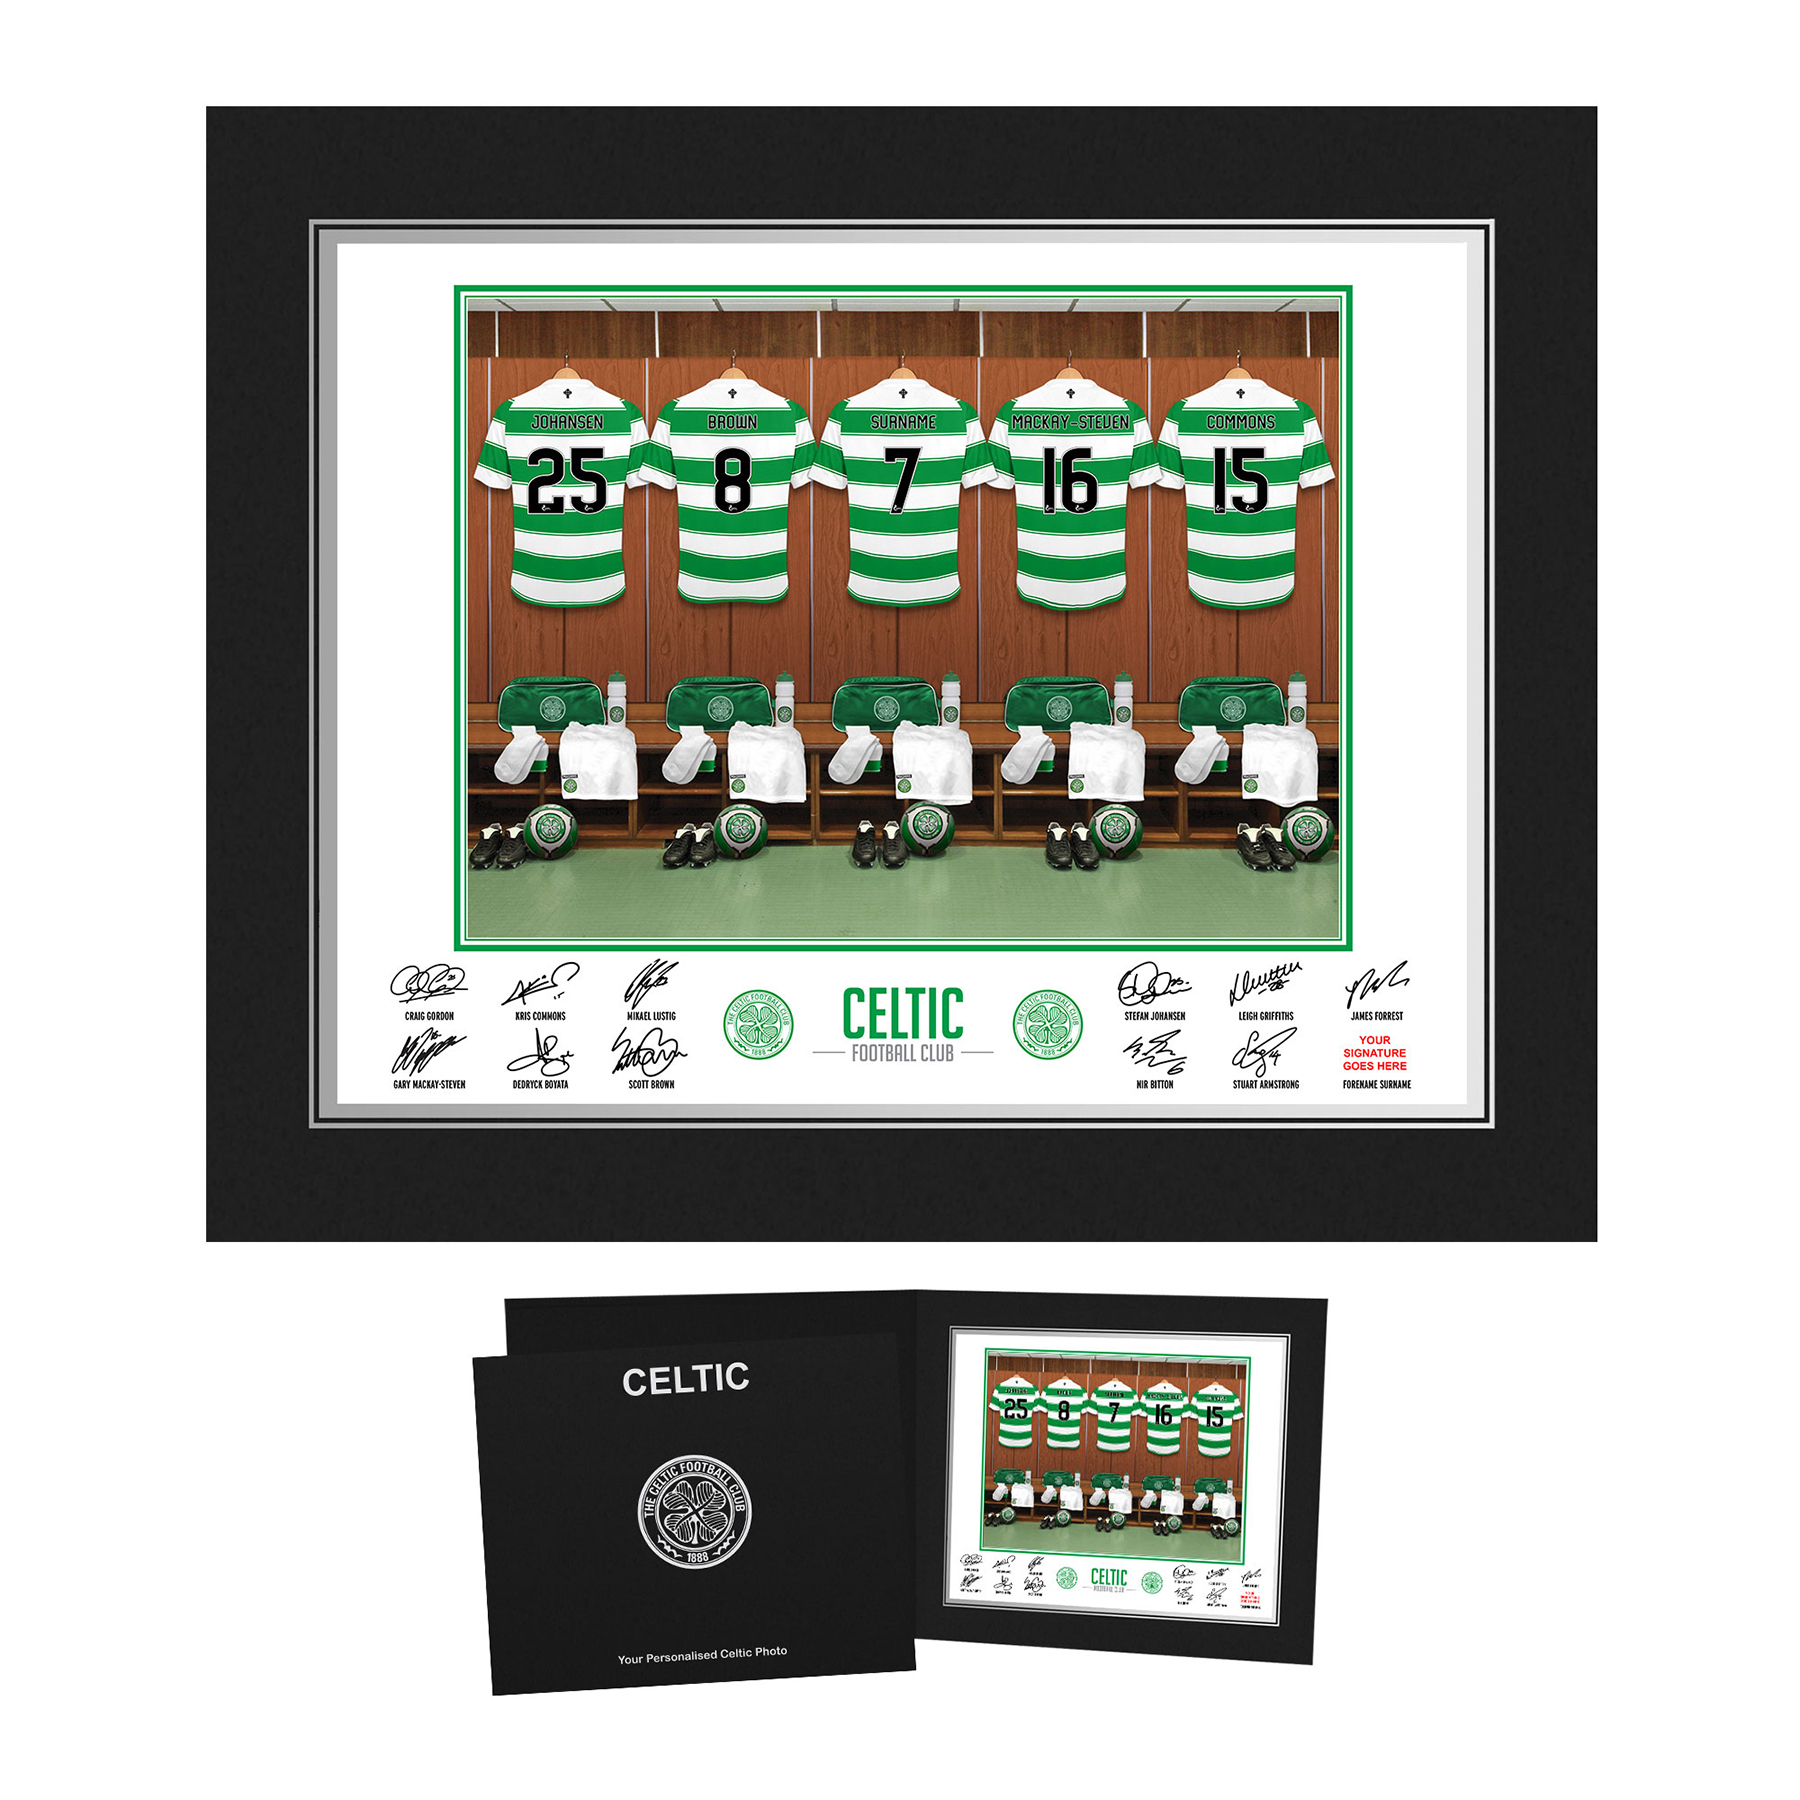 Celtic Personalised Dressing Room Photo in Presentation Folder